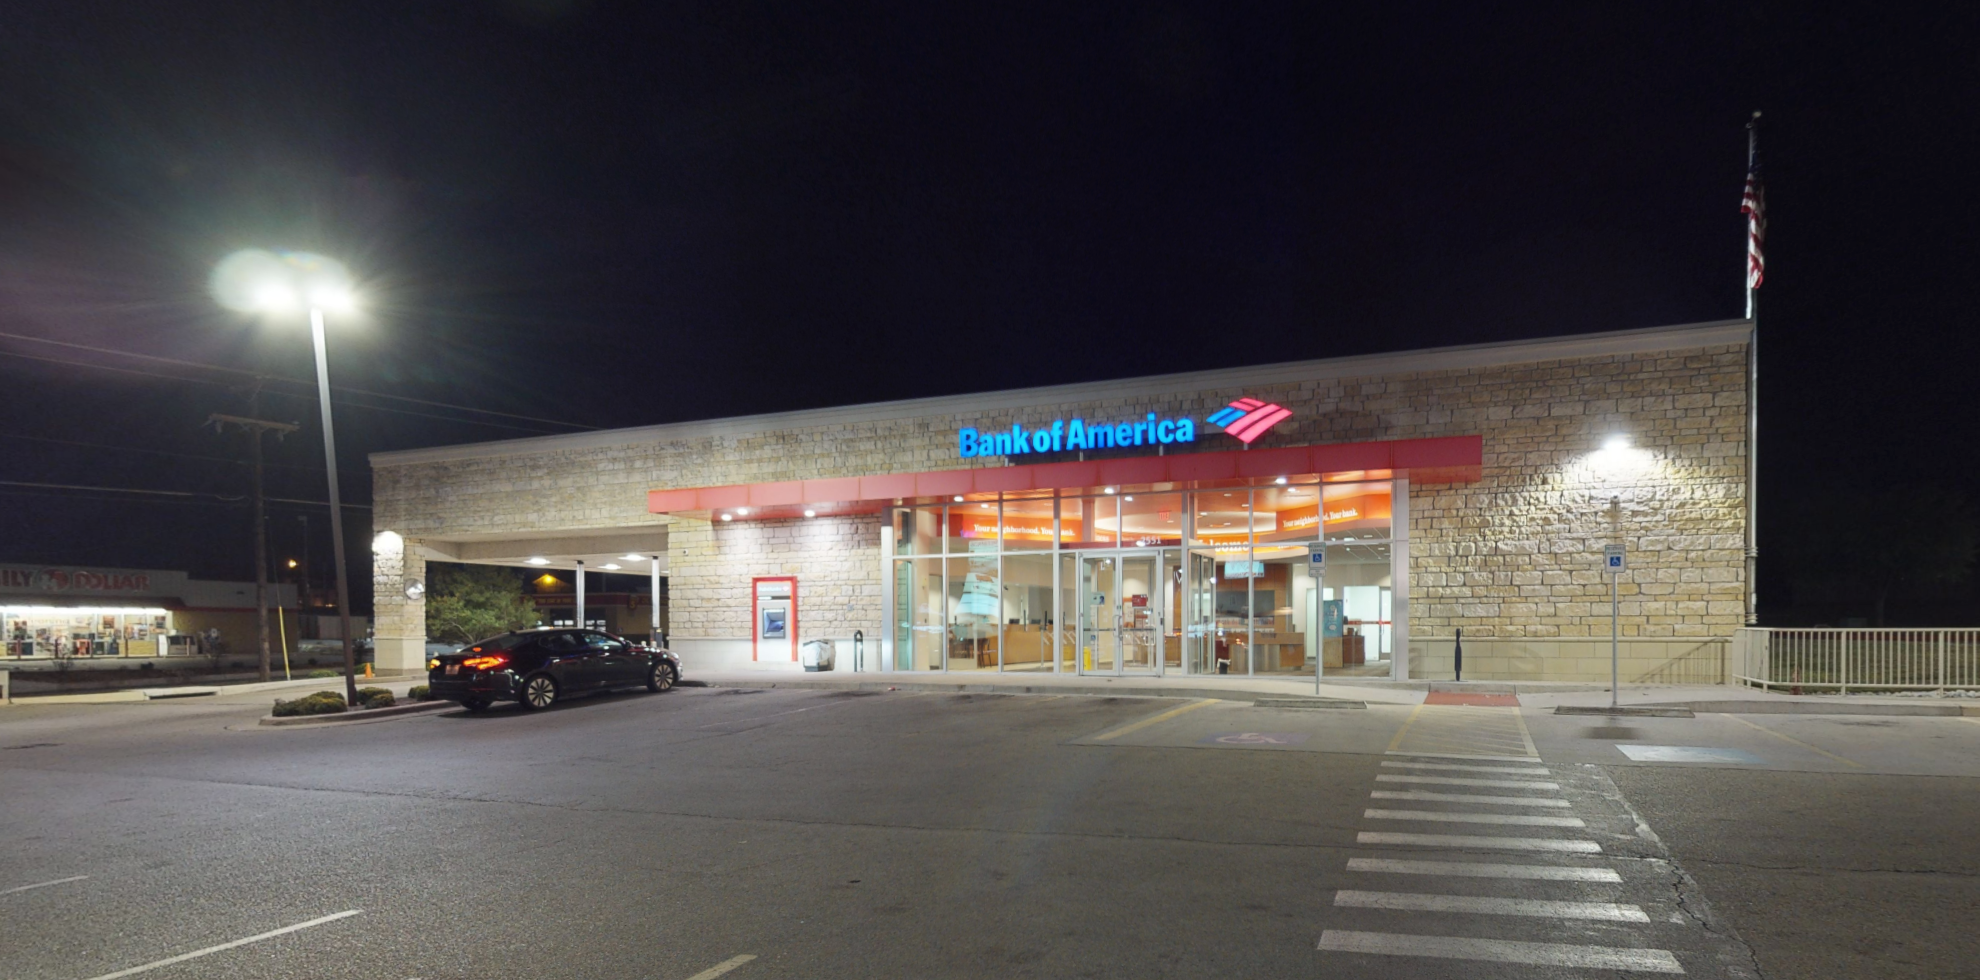 Bank of America financial center with drive-thru ATM and teller | 2551 Trimmier Rd, Killeen, TX 76542